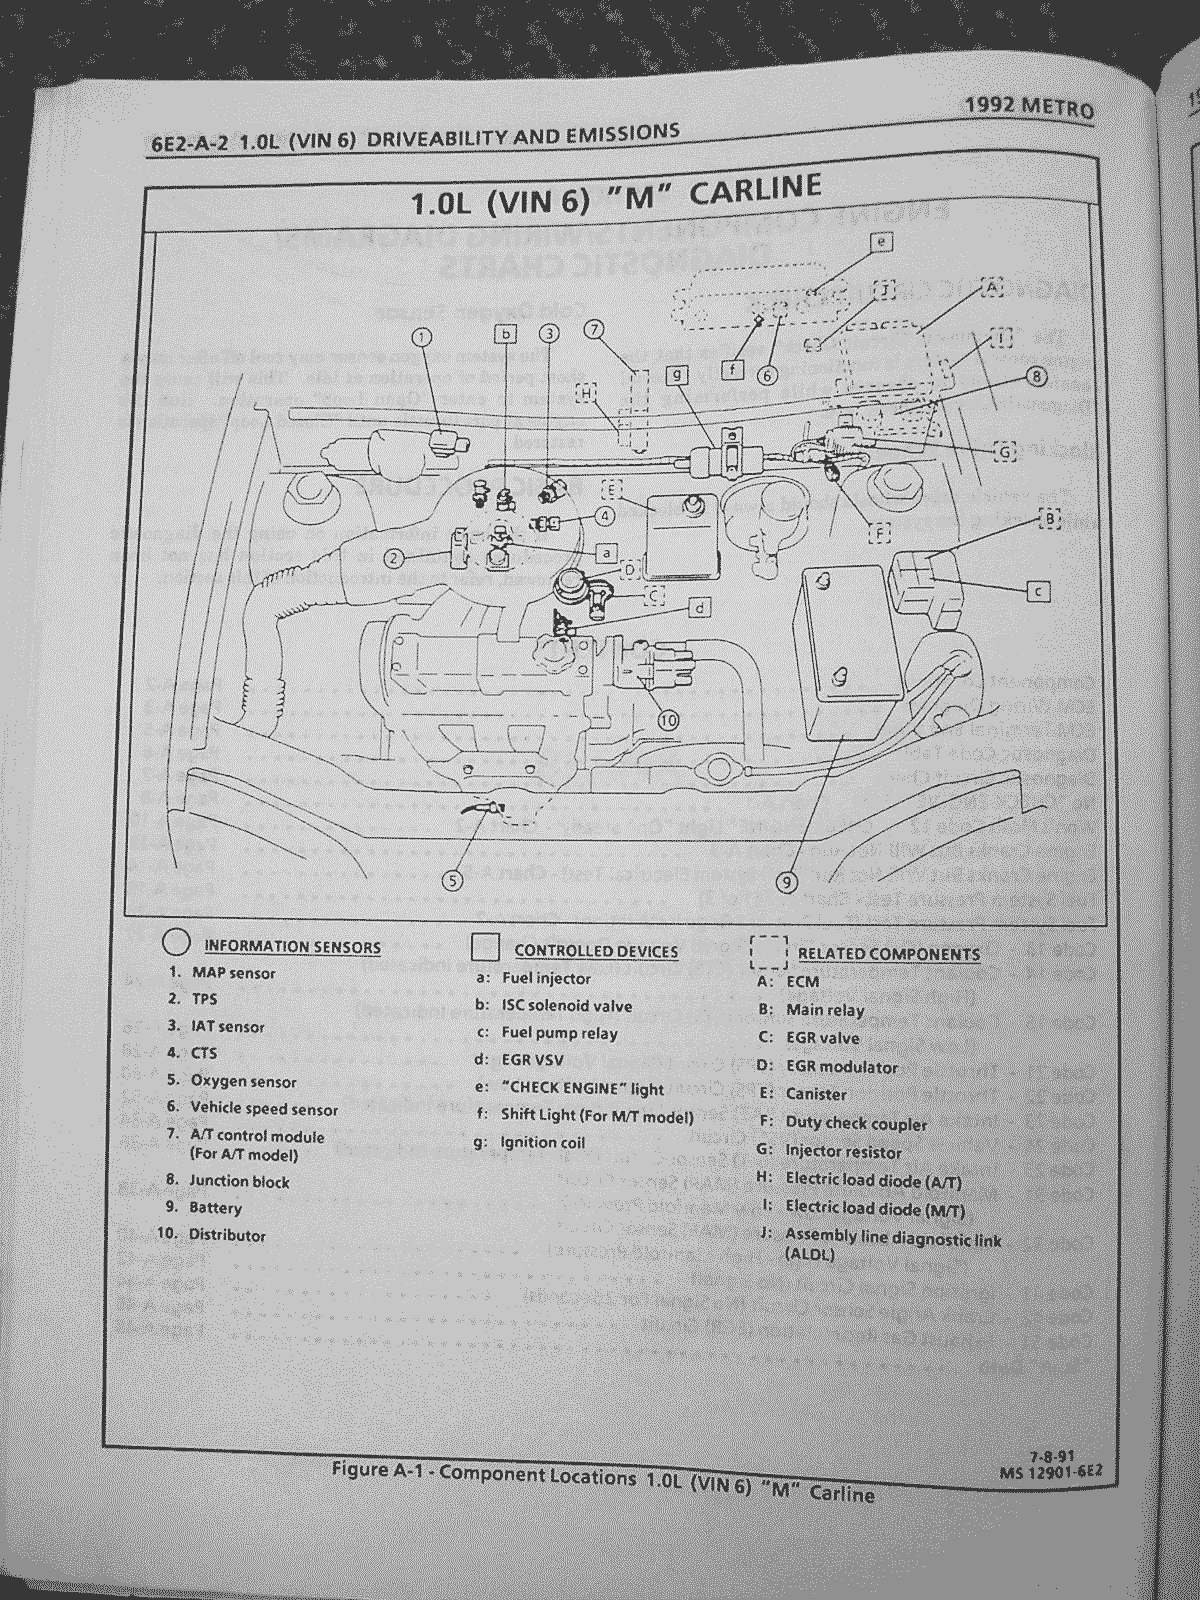 91 Geo Prizm Stereo Wiring Diagrams 1972 Chevelle Ss Wiring Diagrams And Pictures Bege Place Wiring Diagram